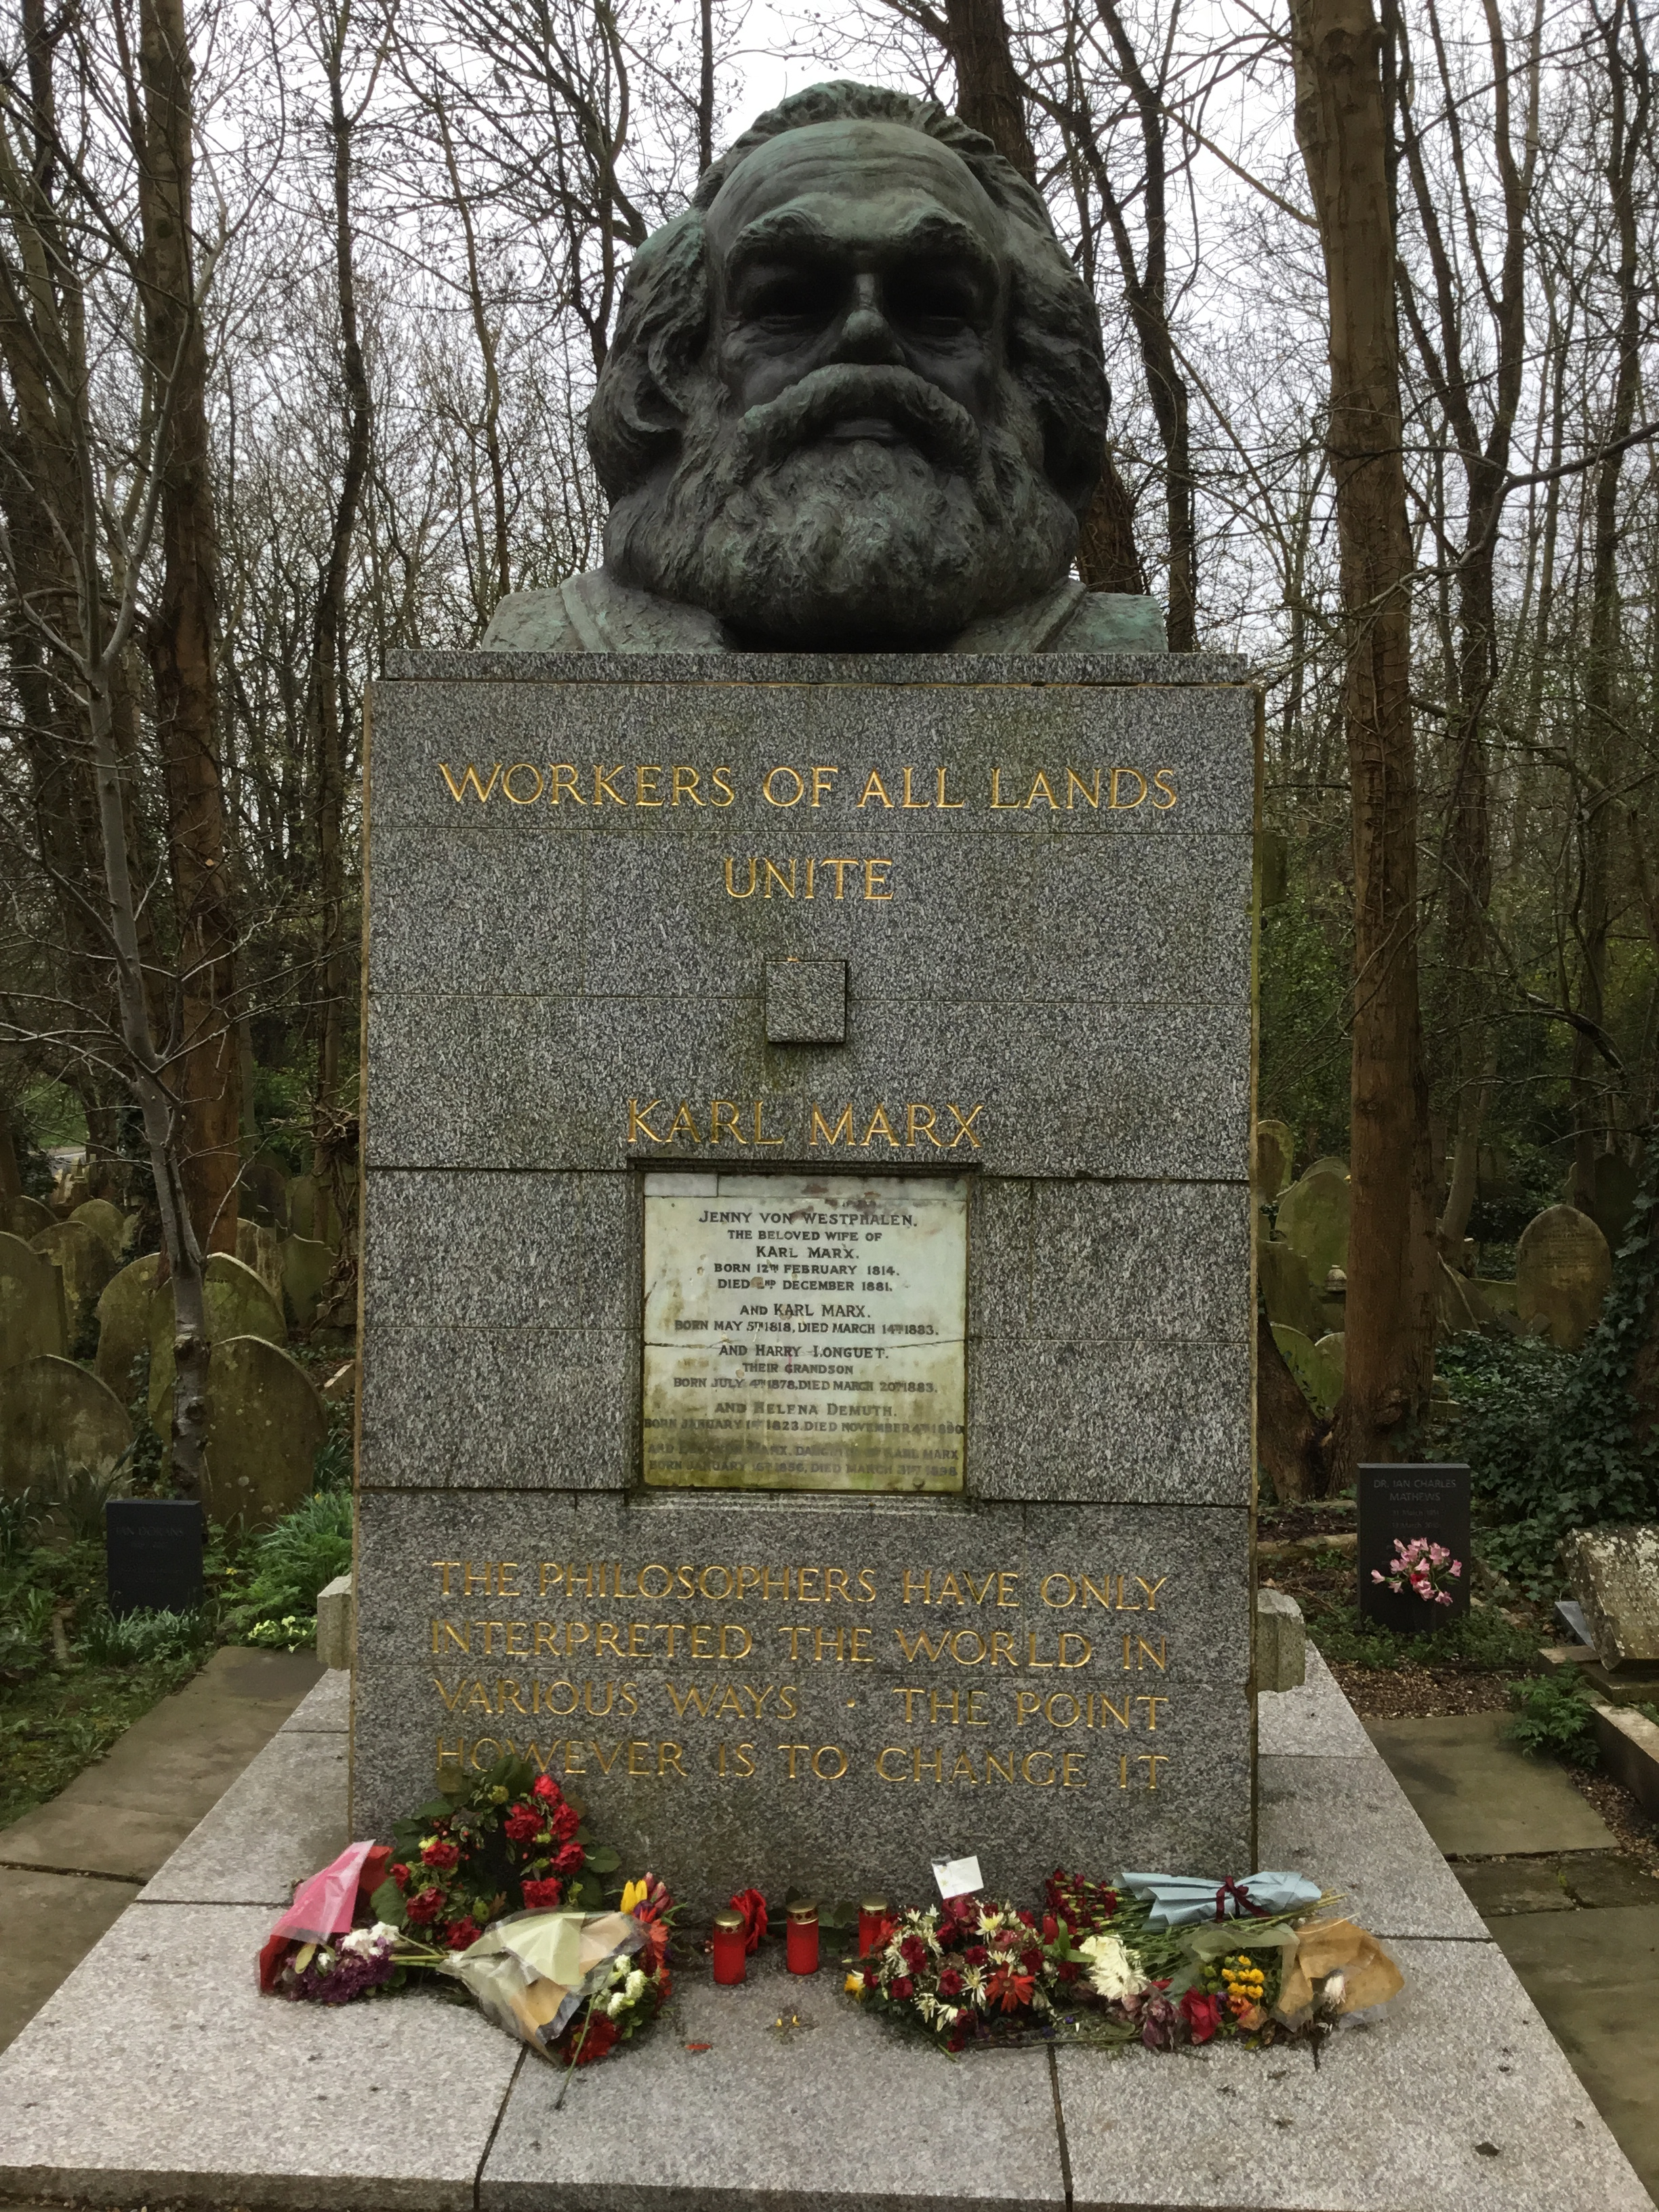 A photo of Marx's grave. Since my father is in London right now, I asked him to return to Highgate Cemetery and take this photo. It's by him: Rick Abel.